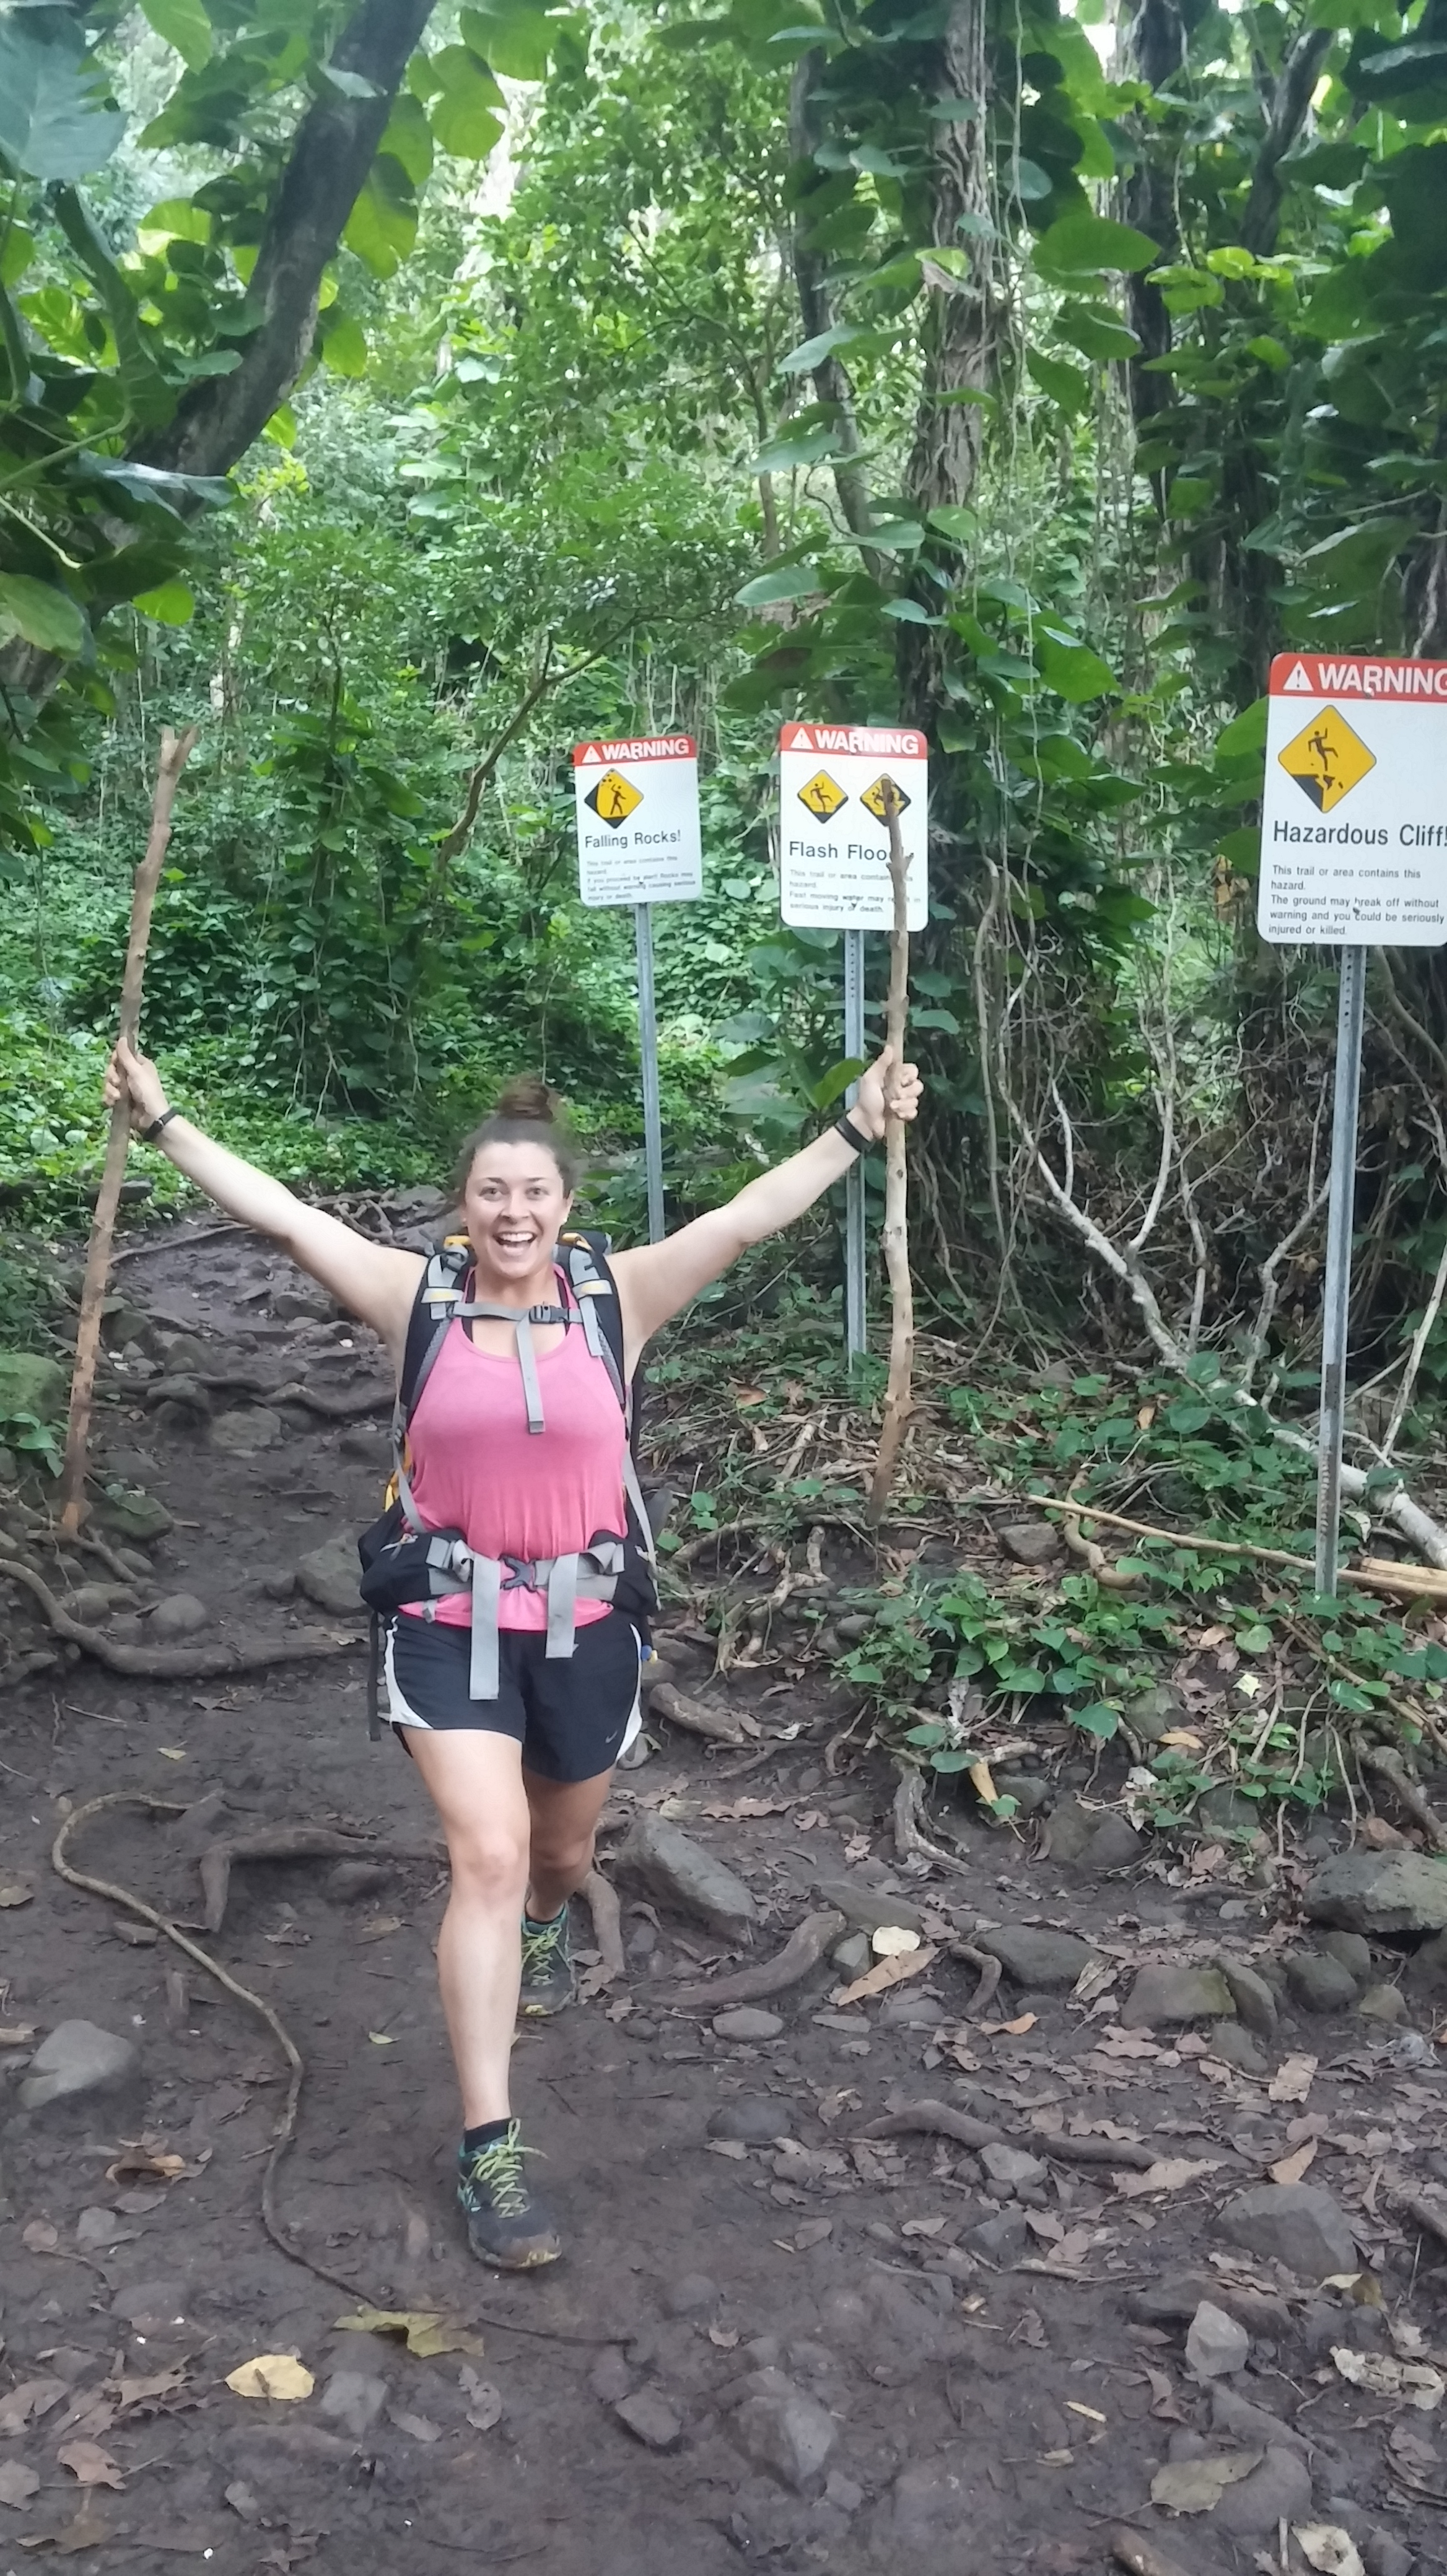 Conquered fears despite warning signs!